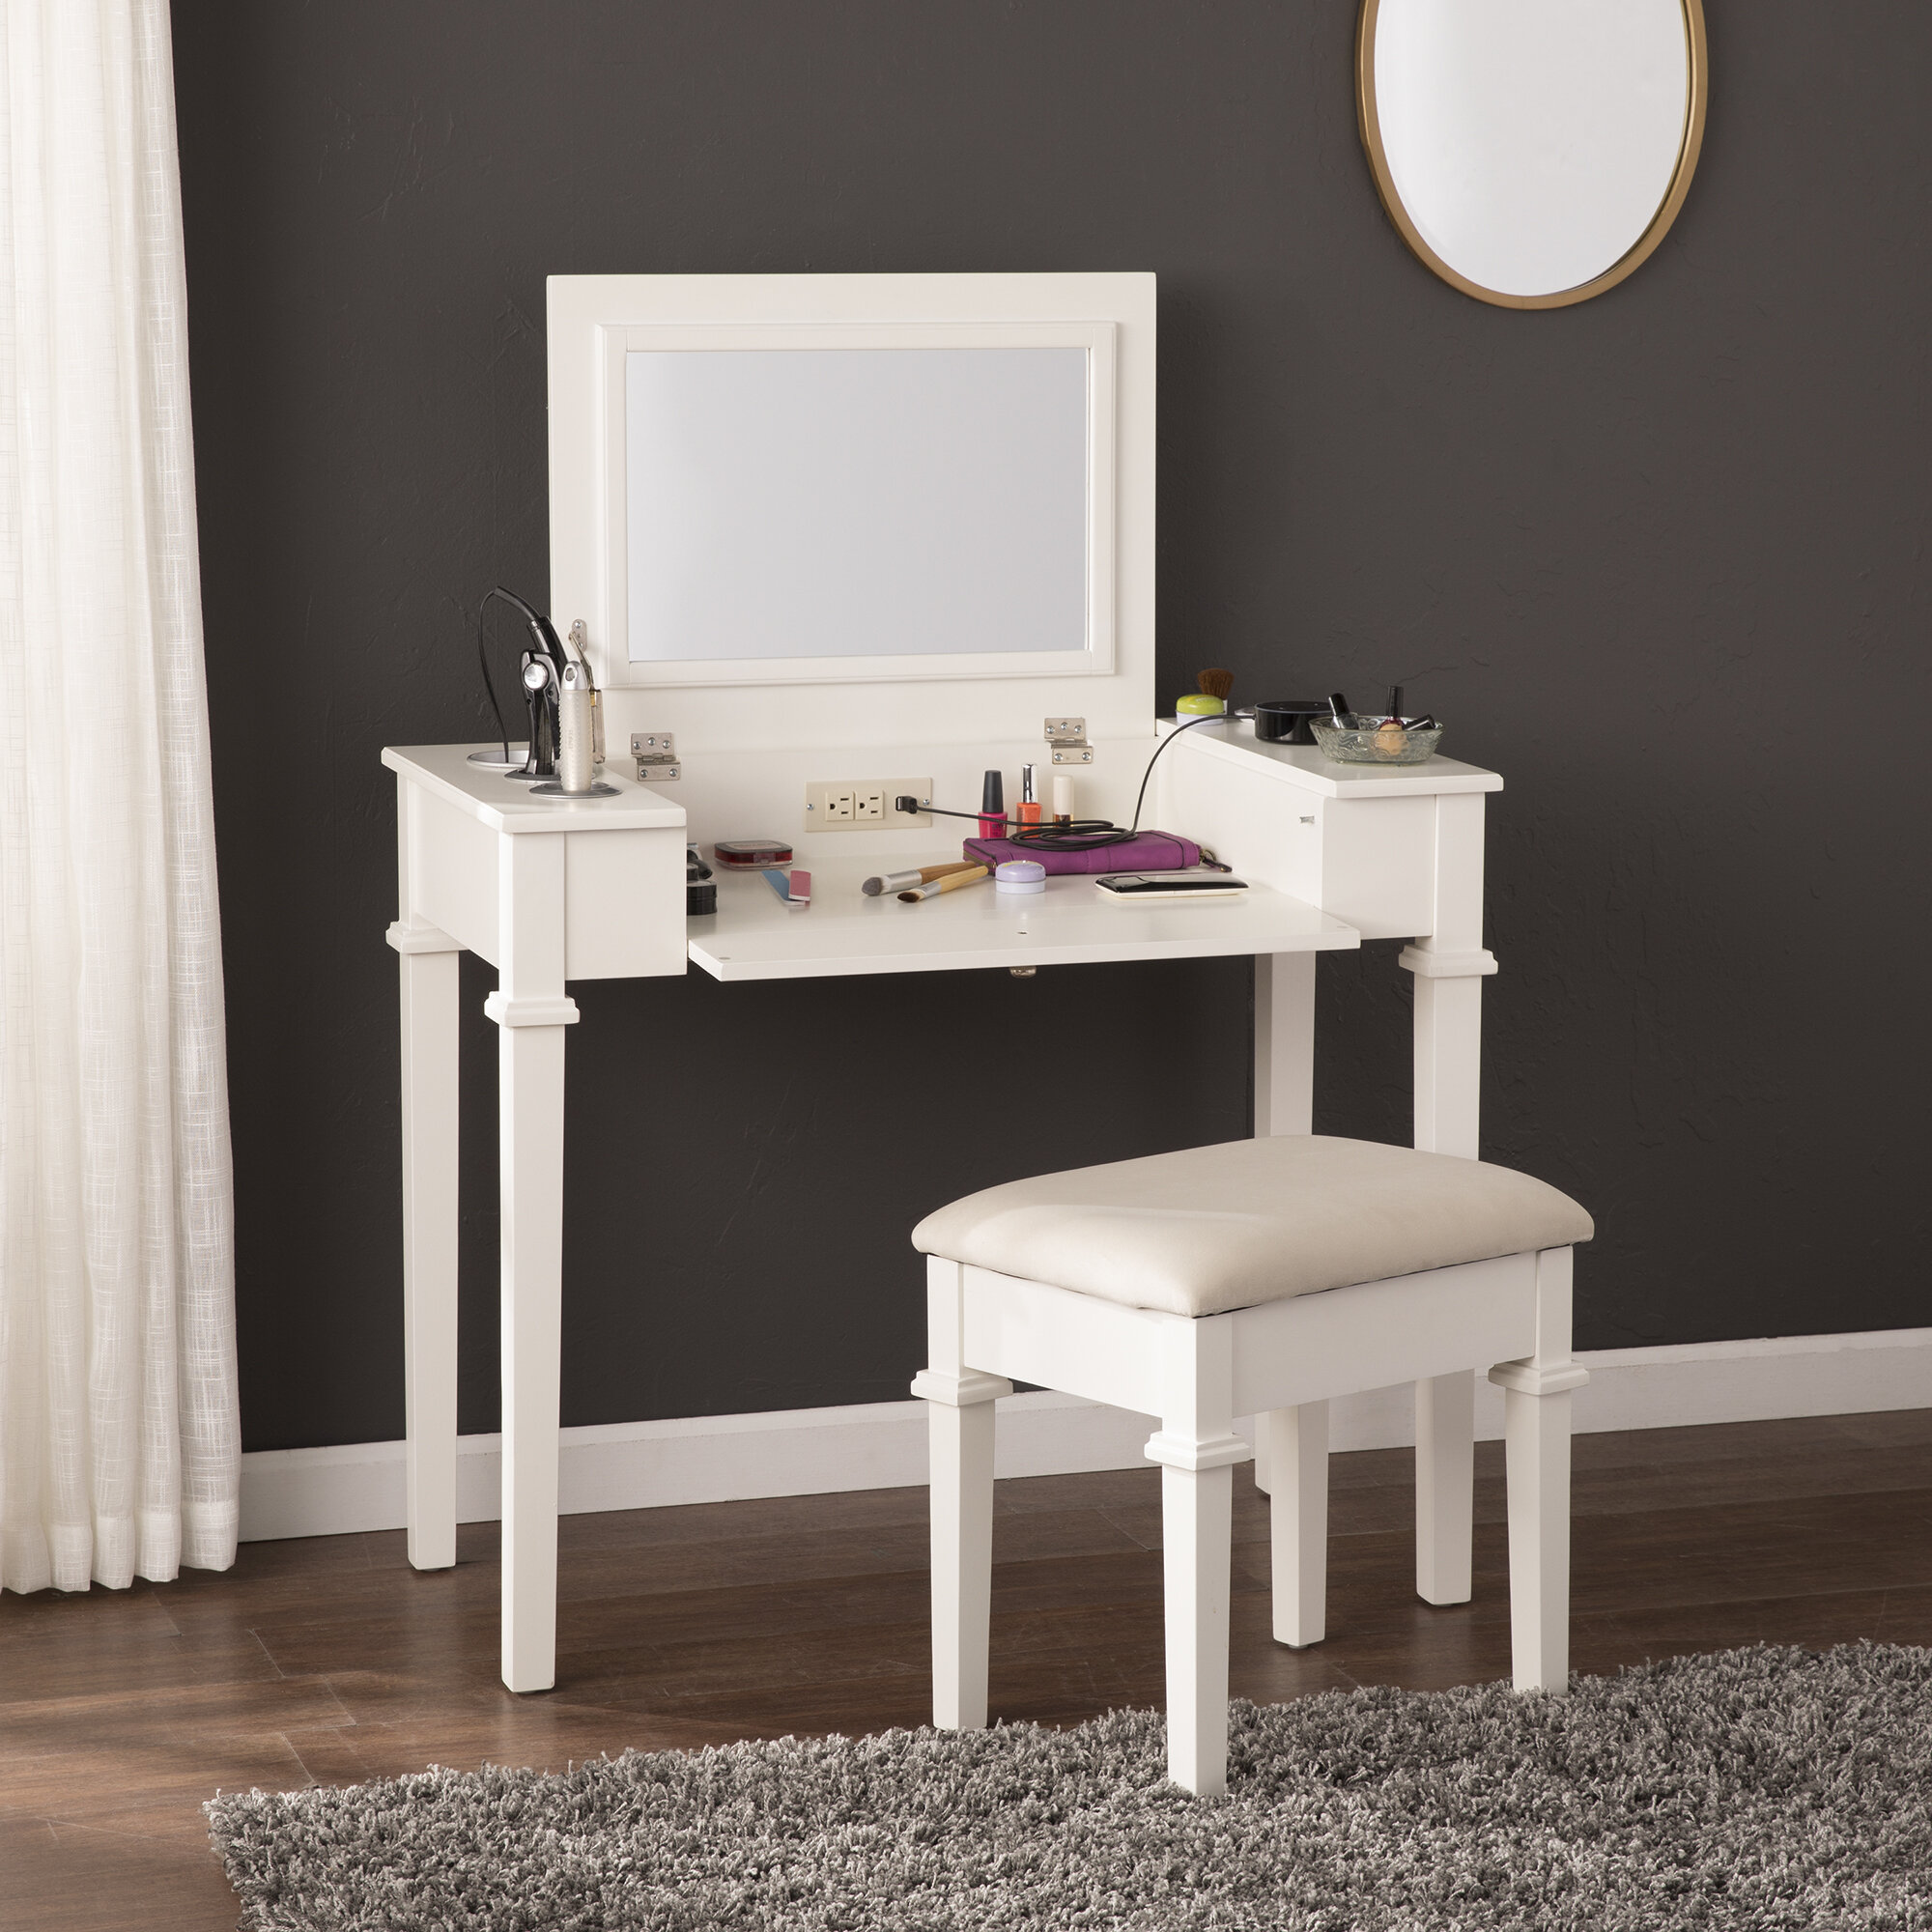 Details About Charlton Home Hutchens Vanity Set With Mirror